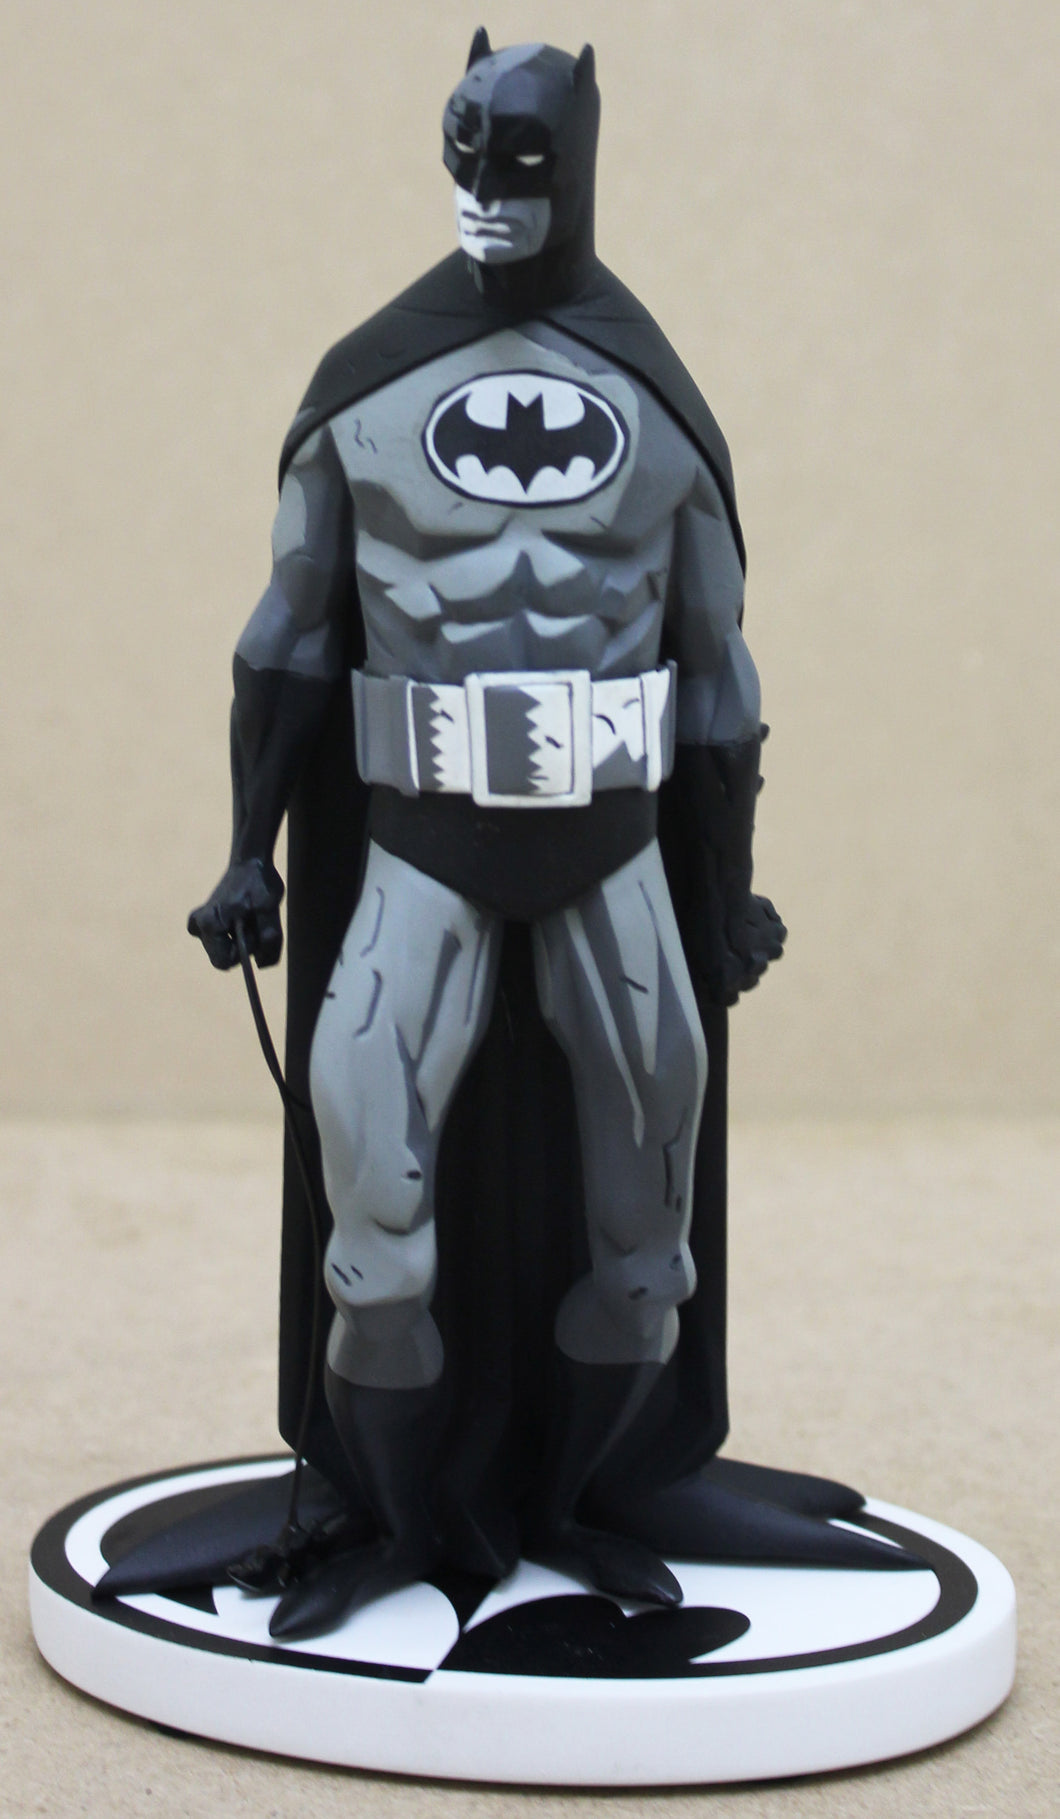 Batman Statue Black and White by Mike Mignola